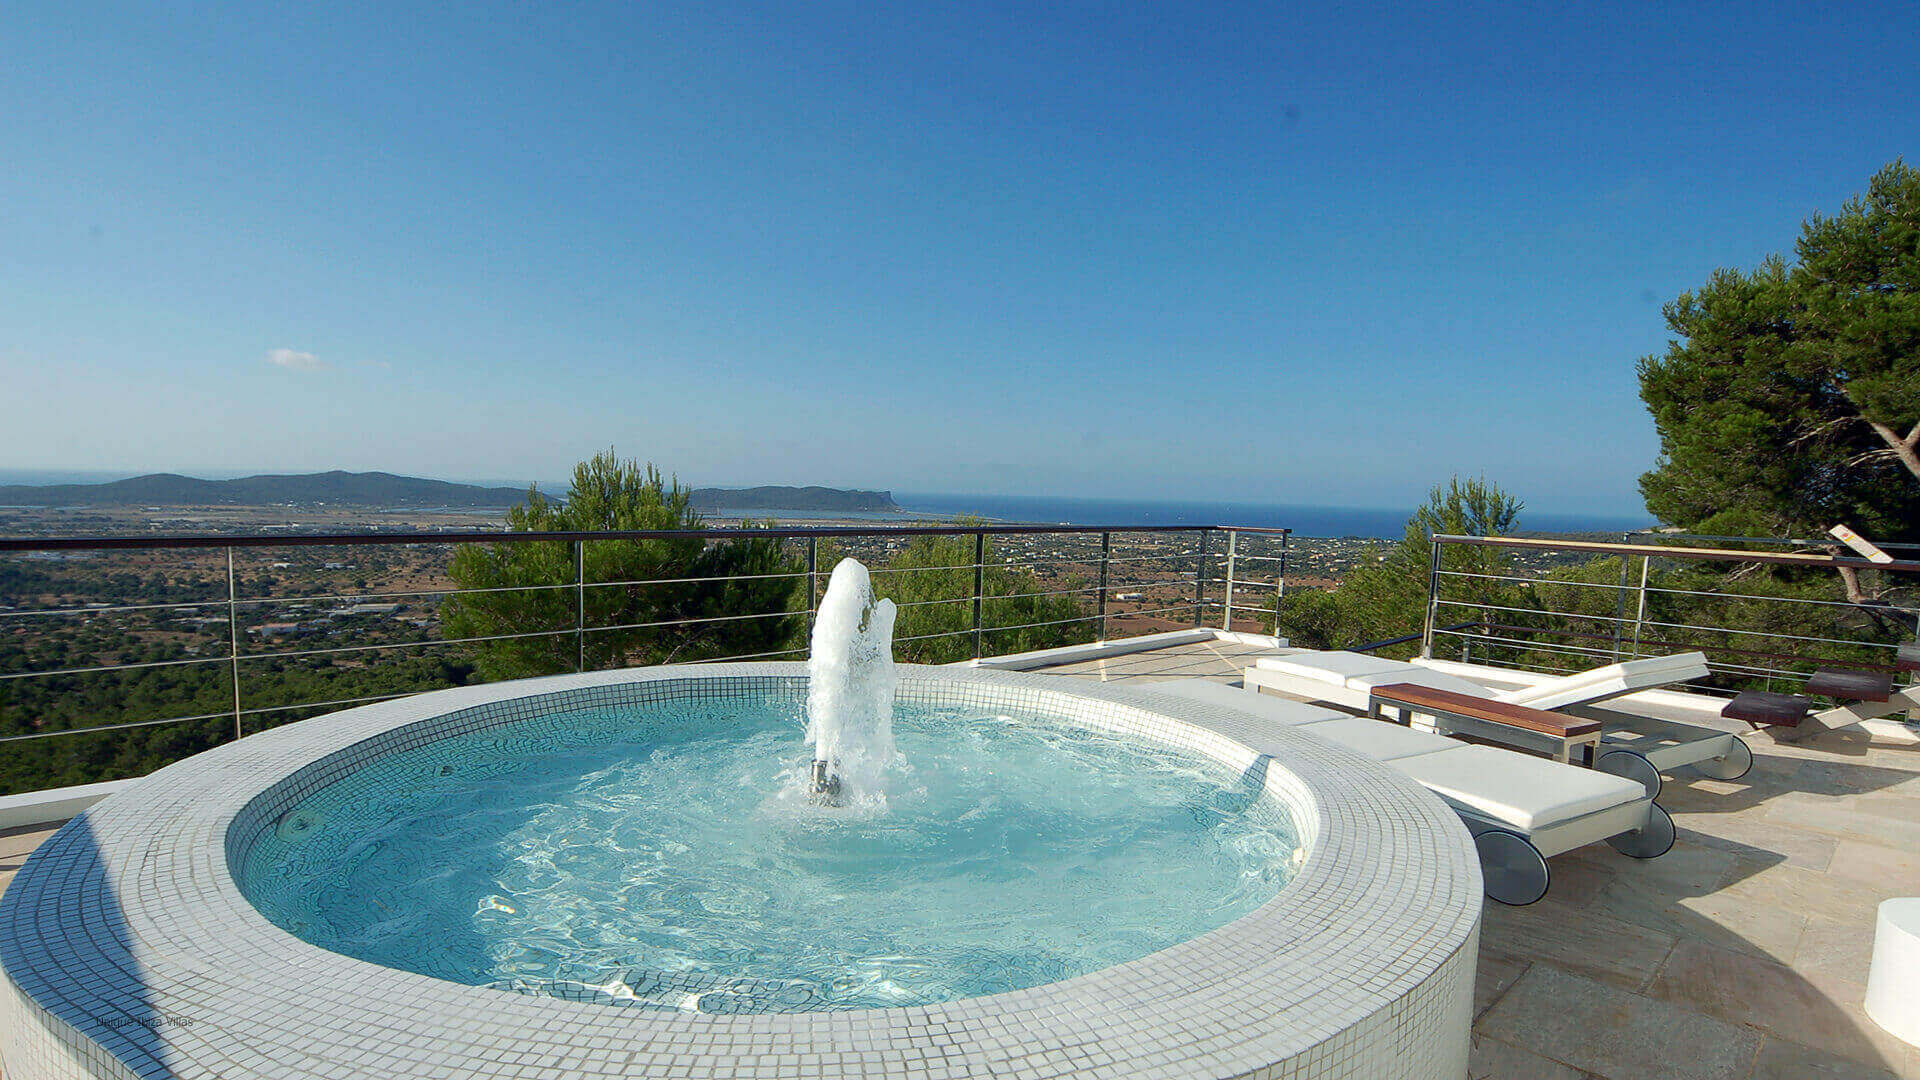 Villa Roca Ibiza 8 Luxury Catered Villa